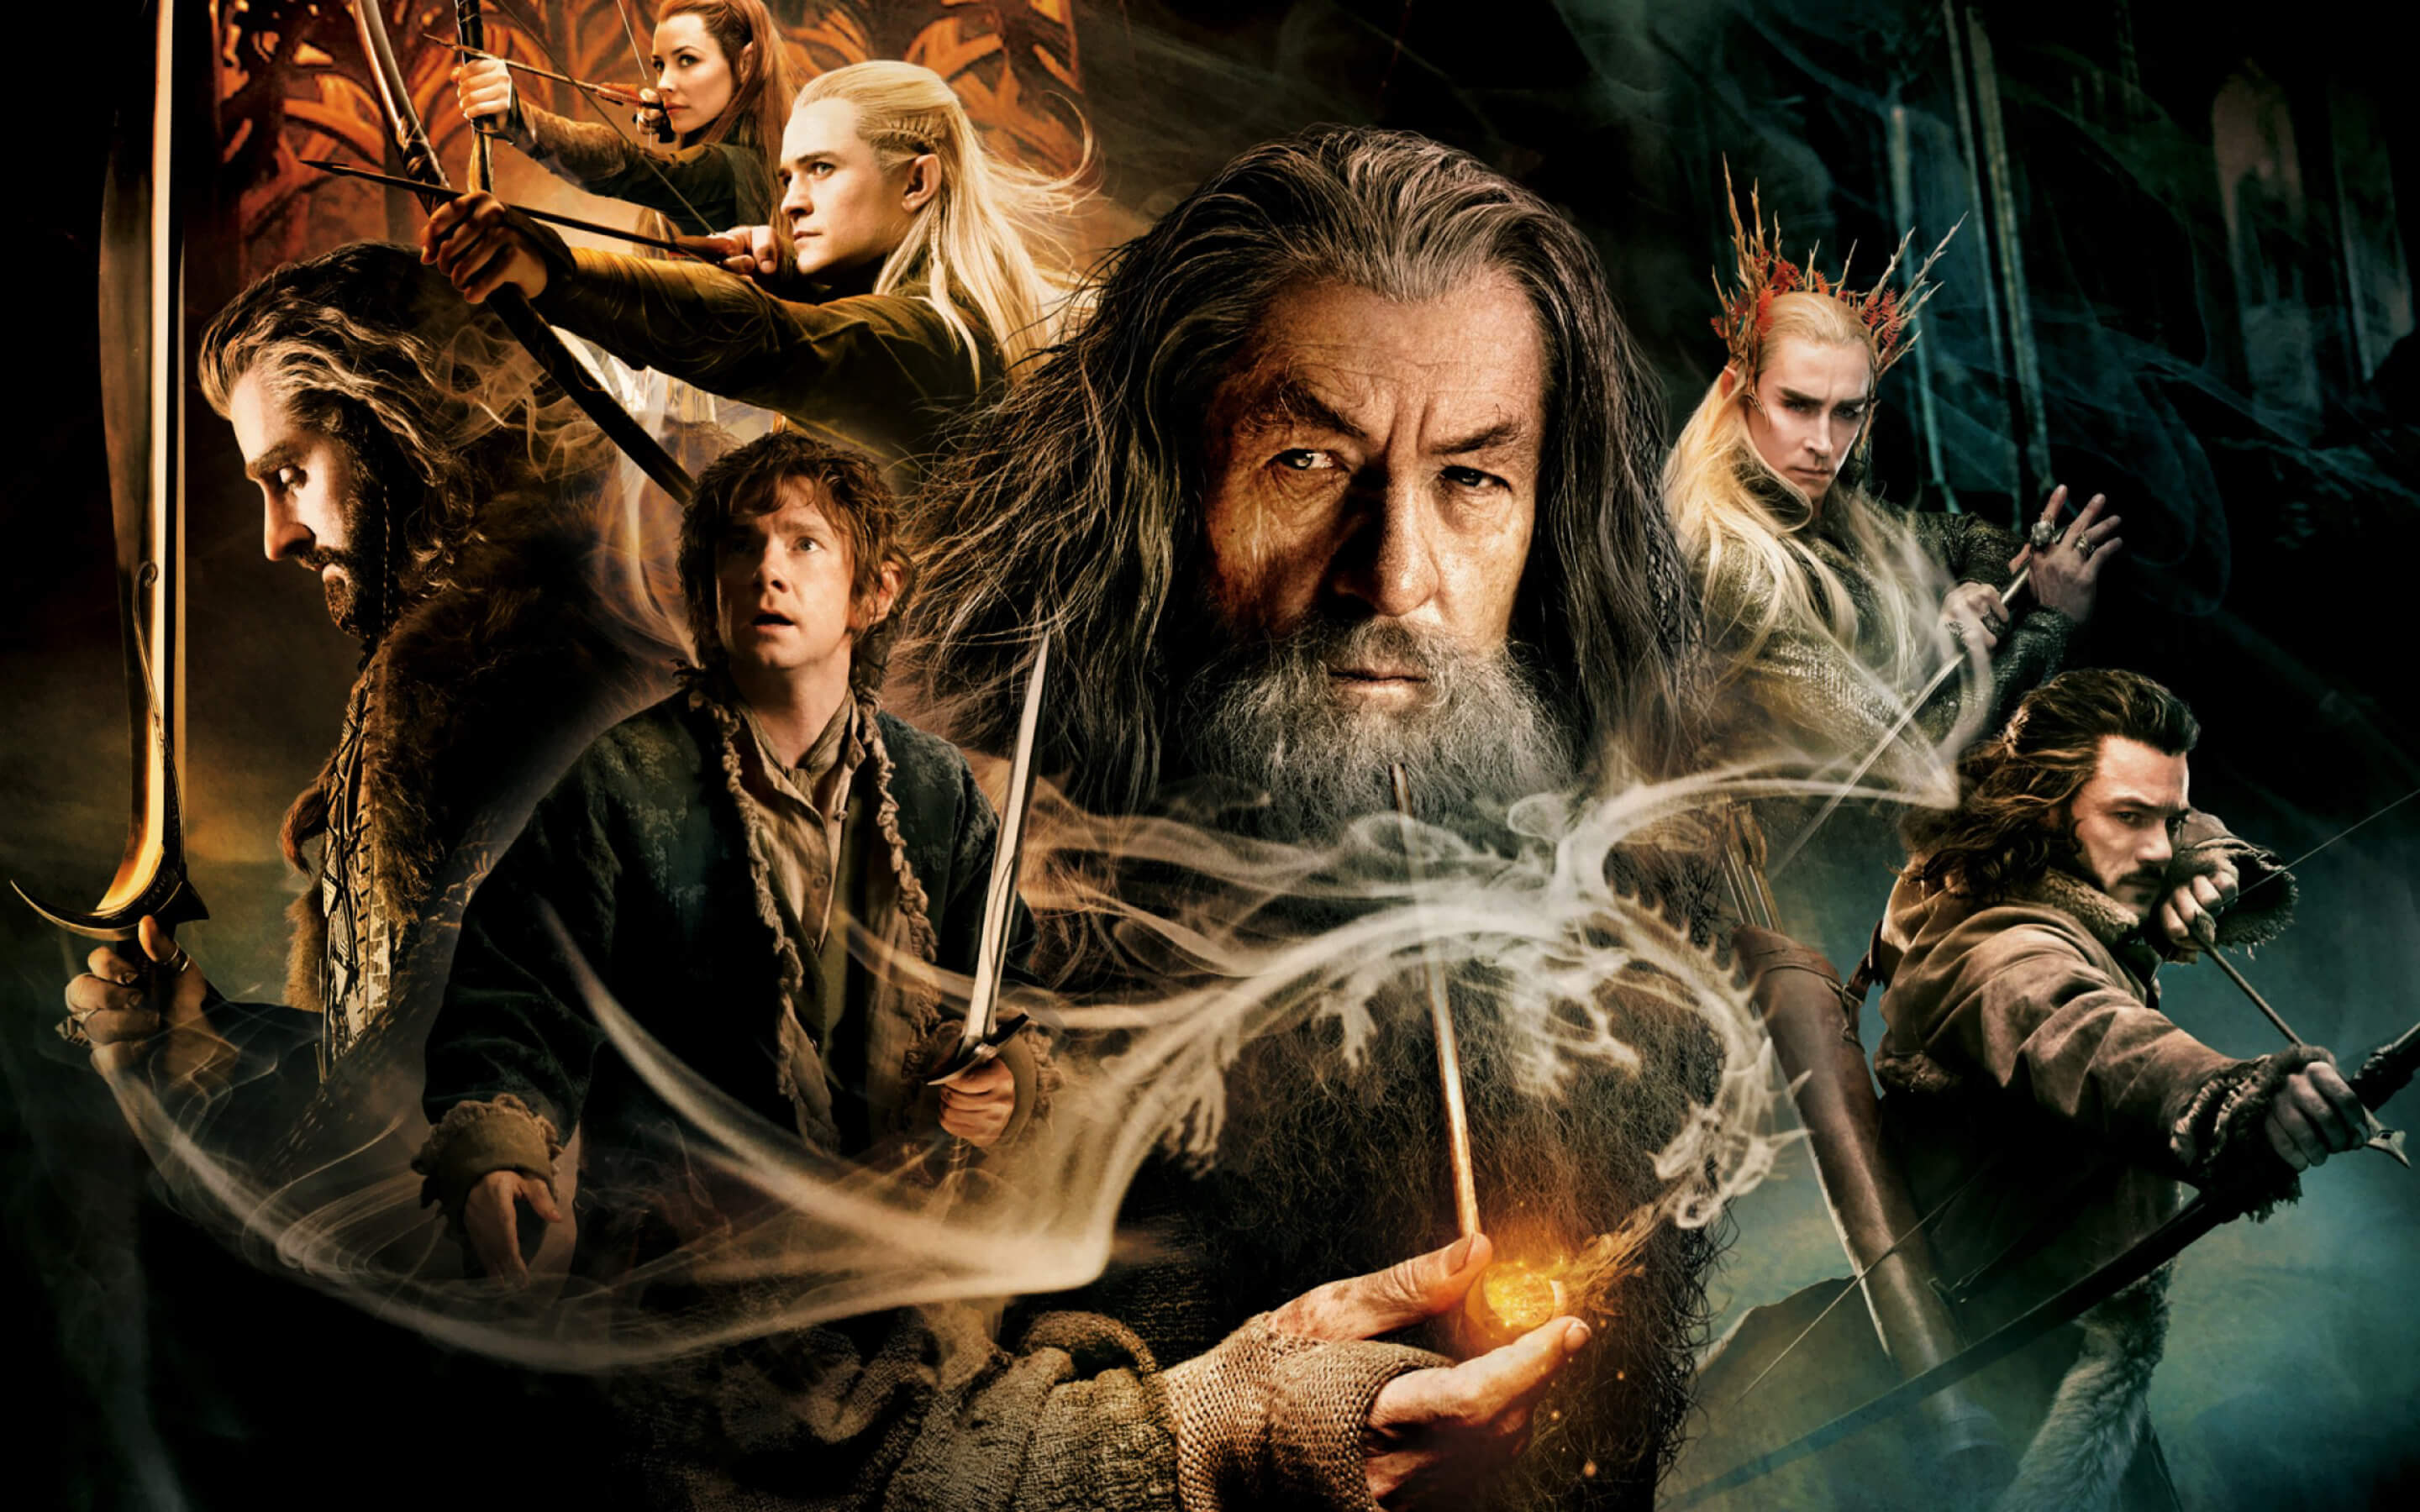 The-Hobbit-The-Desolation-of-Smaug-2013-wallpaper